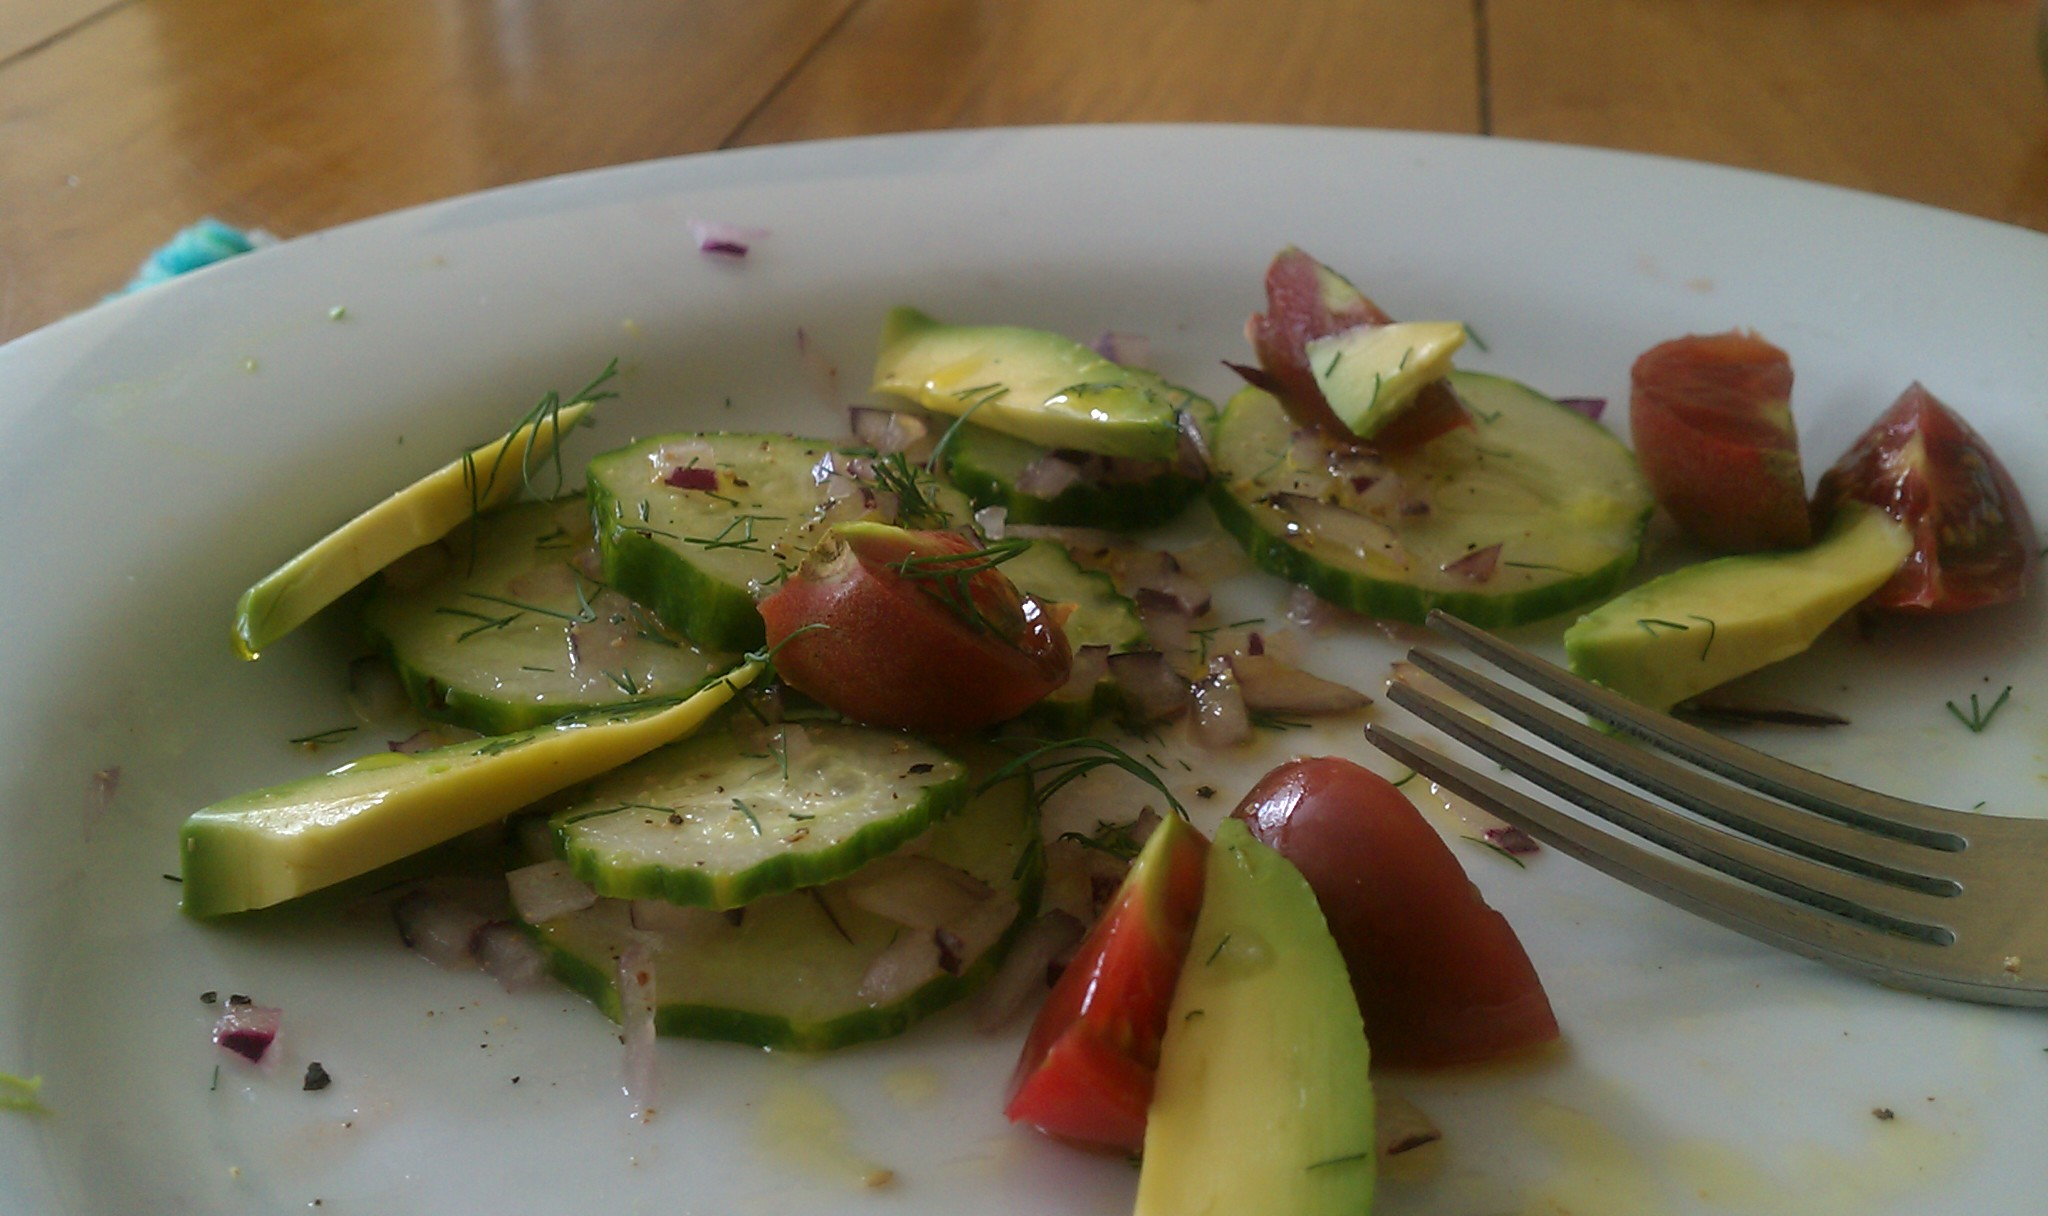 avocado, cucumbers, and black prince tomatoes in vinaigrette